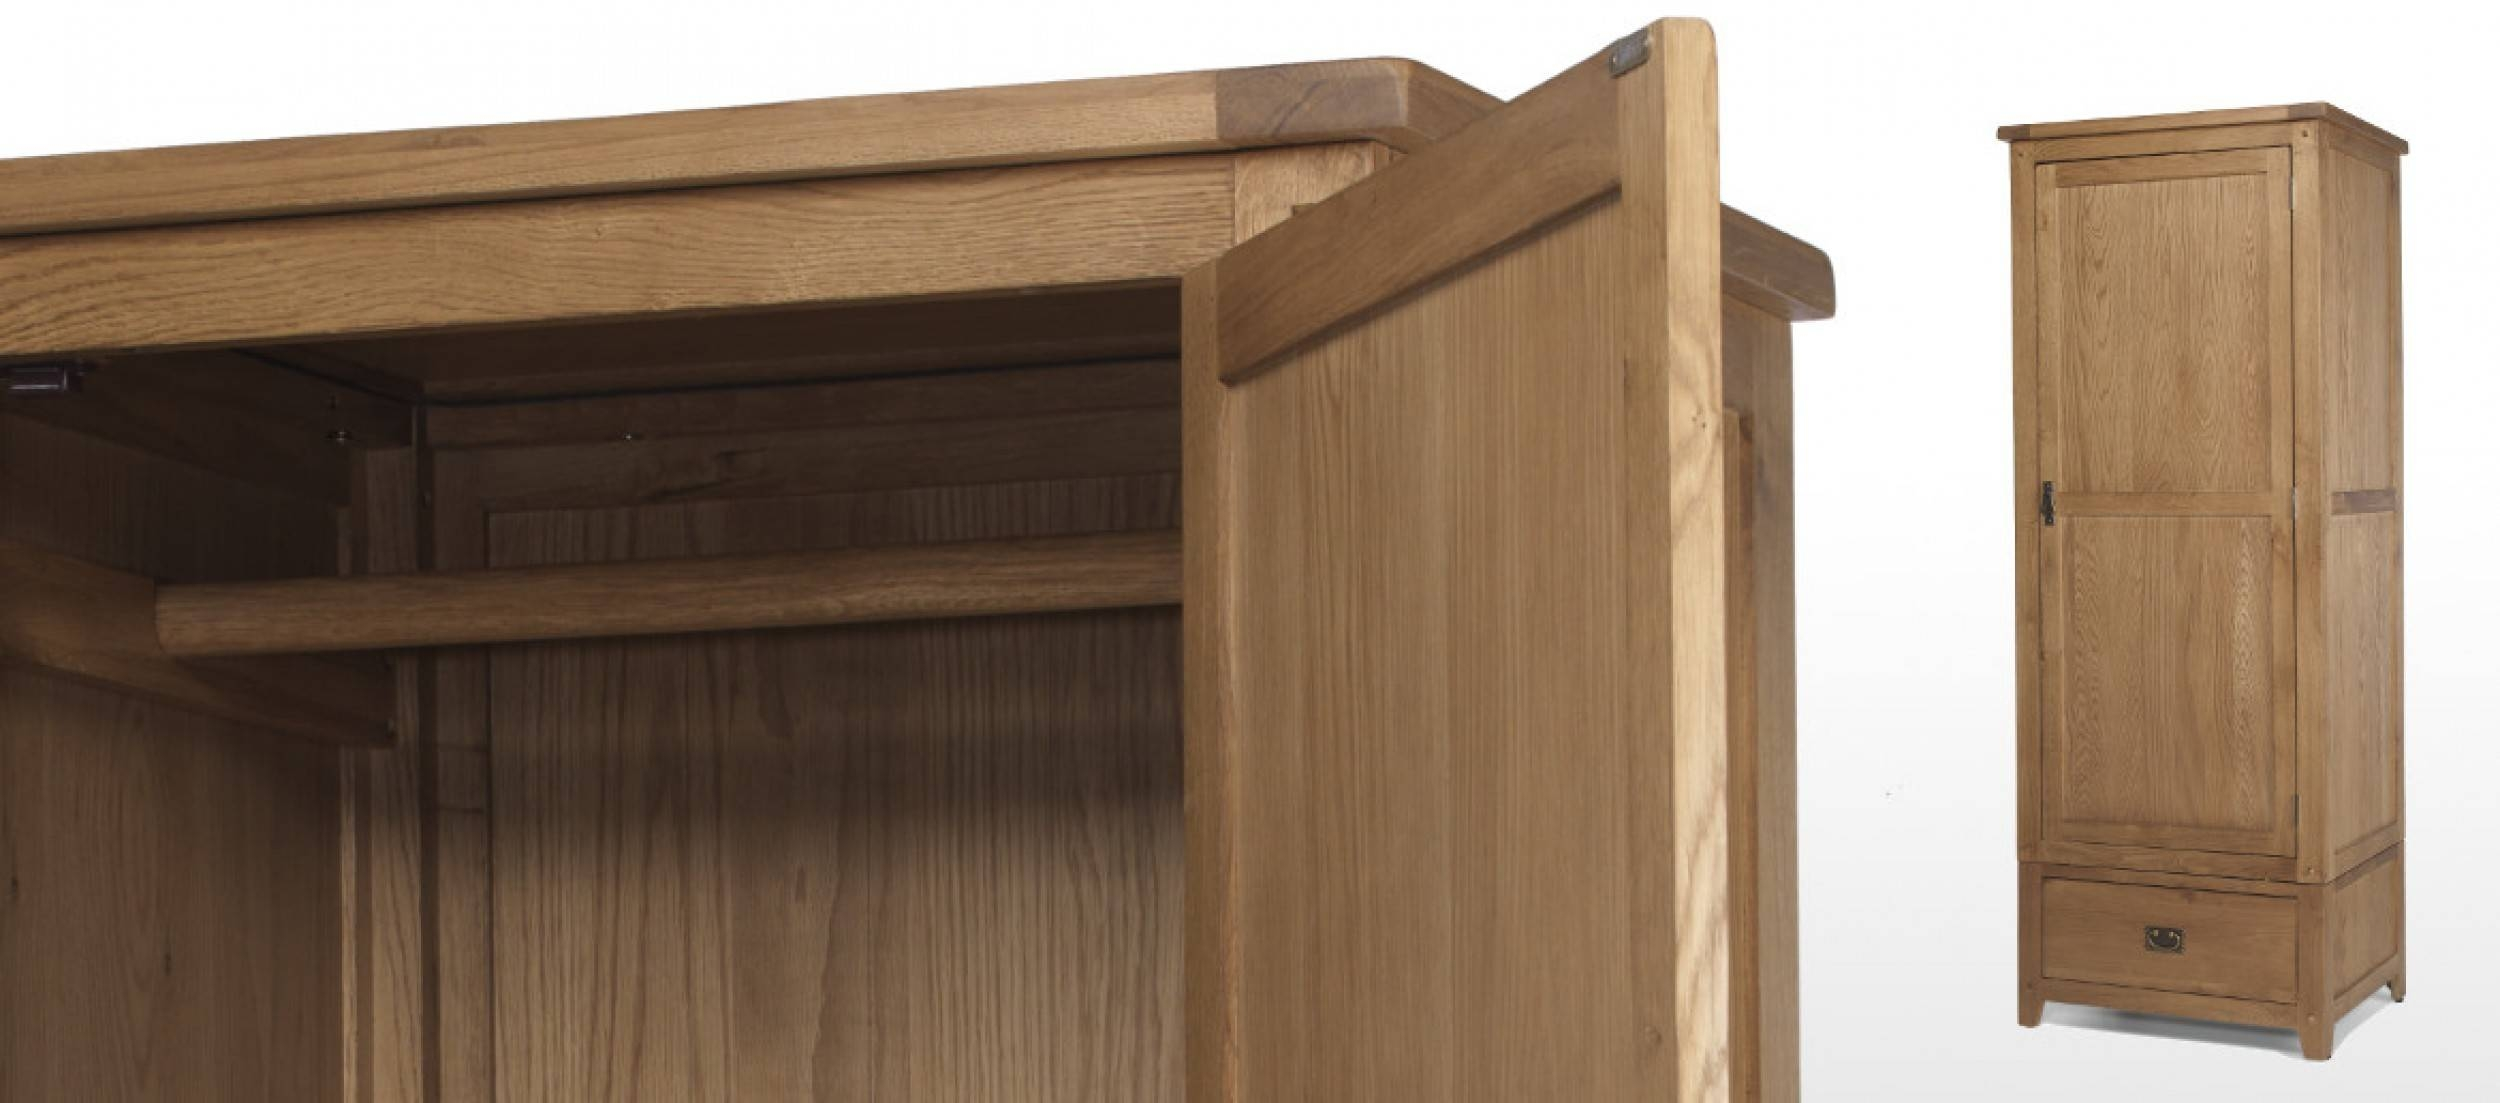 Rustic Oak Single Wardrobe | Quercus Living inside Single Oak Wardrobes With Drawers (Image 13 of 15)